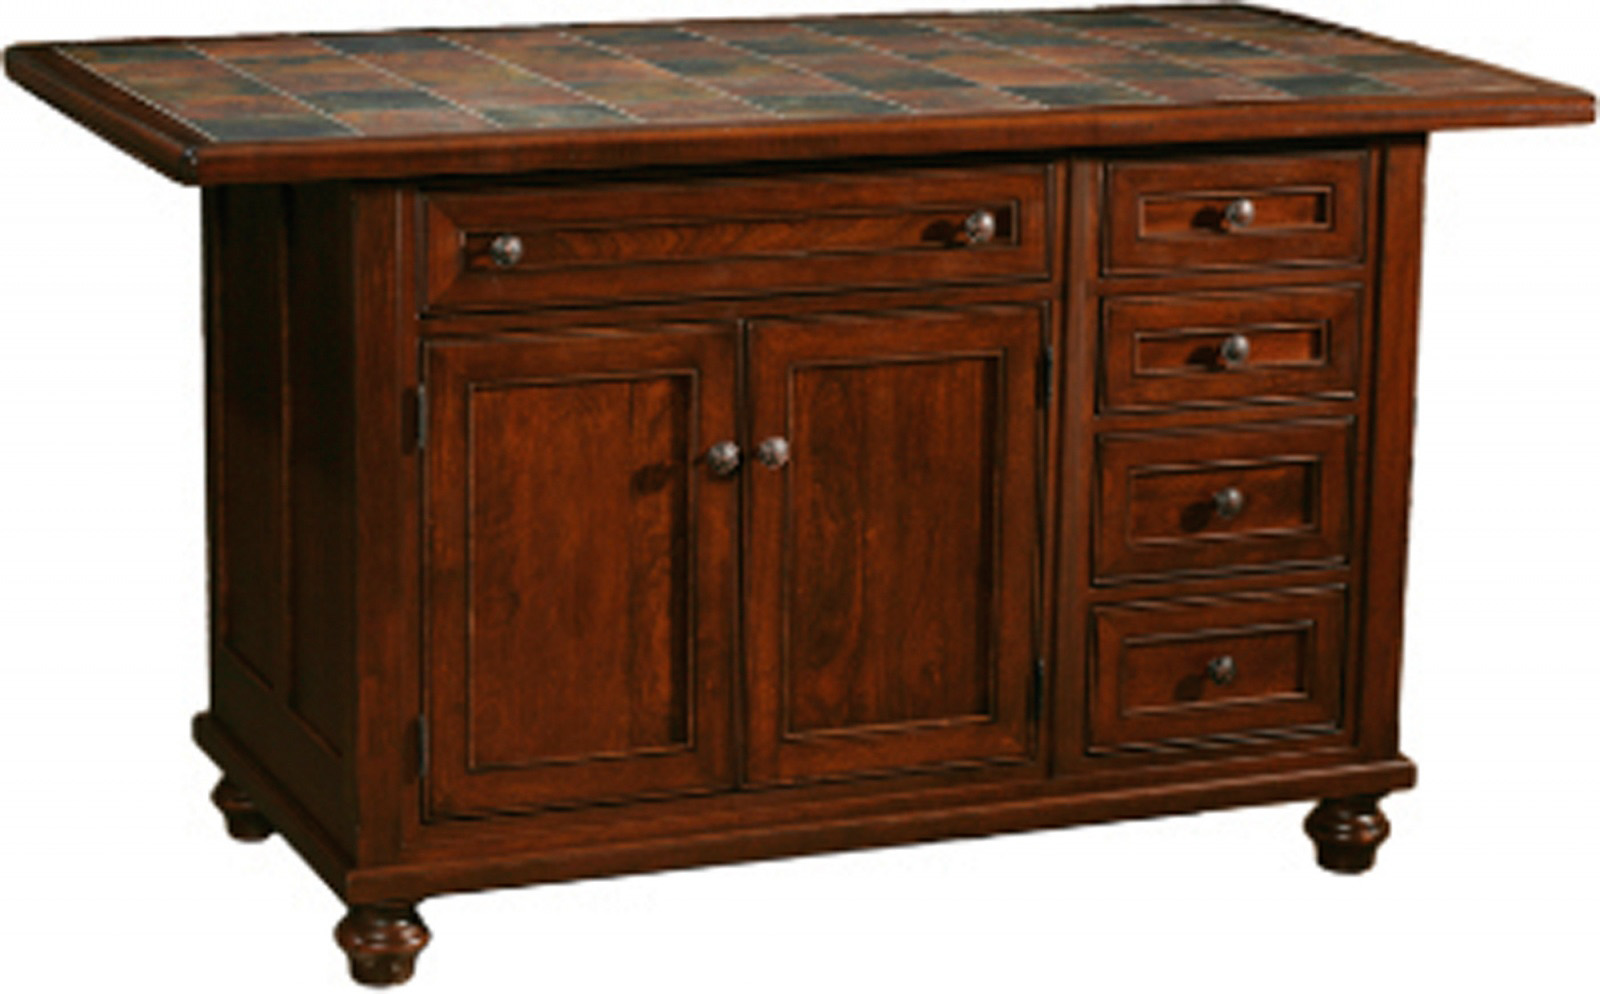 Oceanside Kitchen Islands - Town & Country Furniture